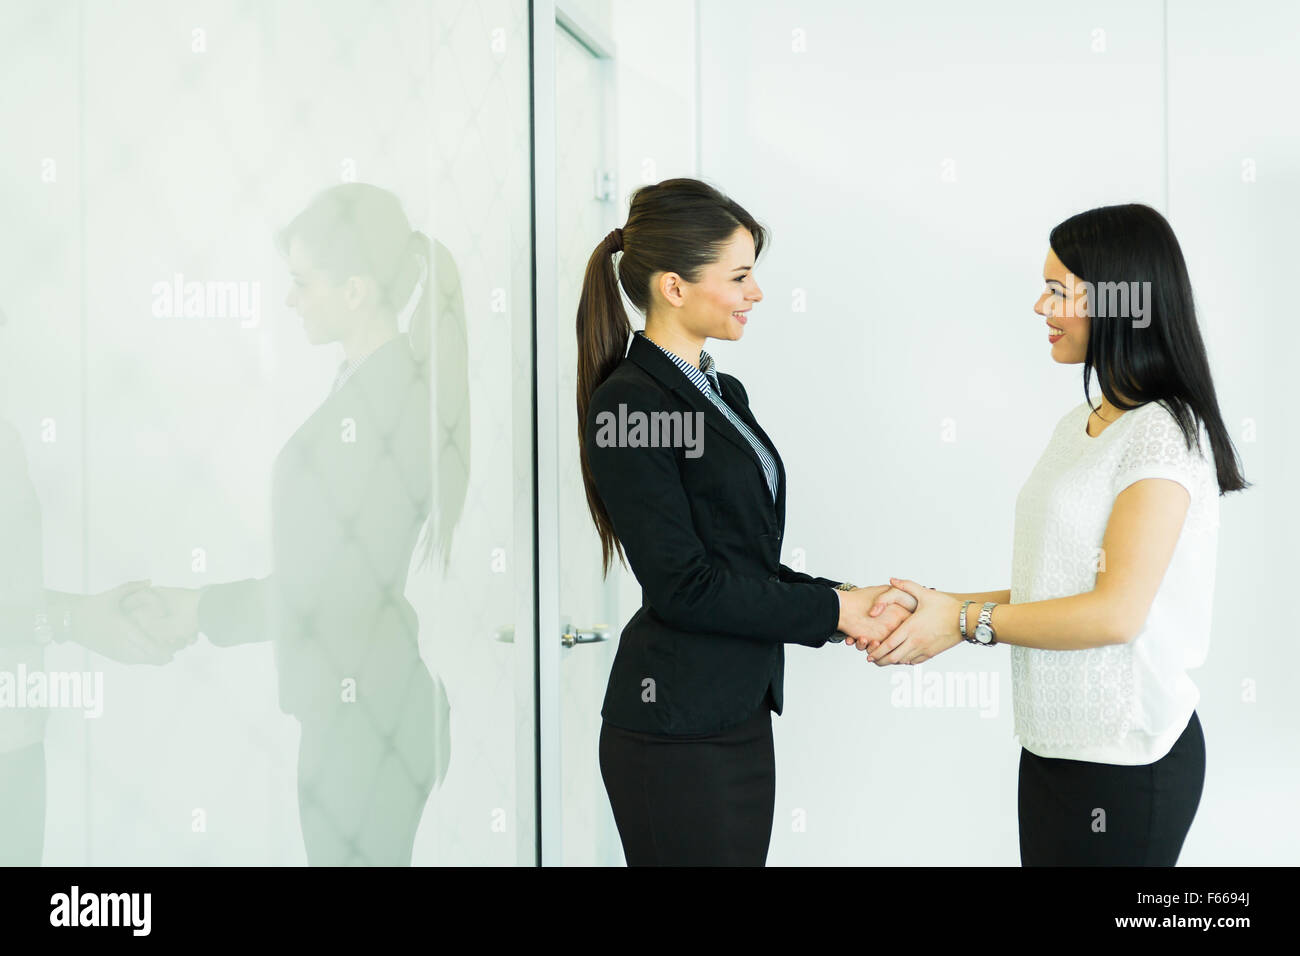 Handshake between two colleagues in a business office - Stock Image